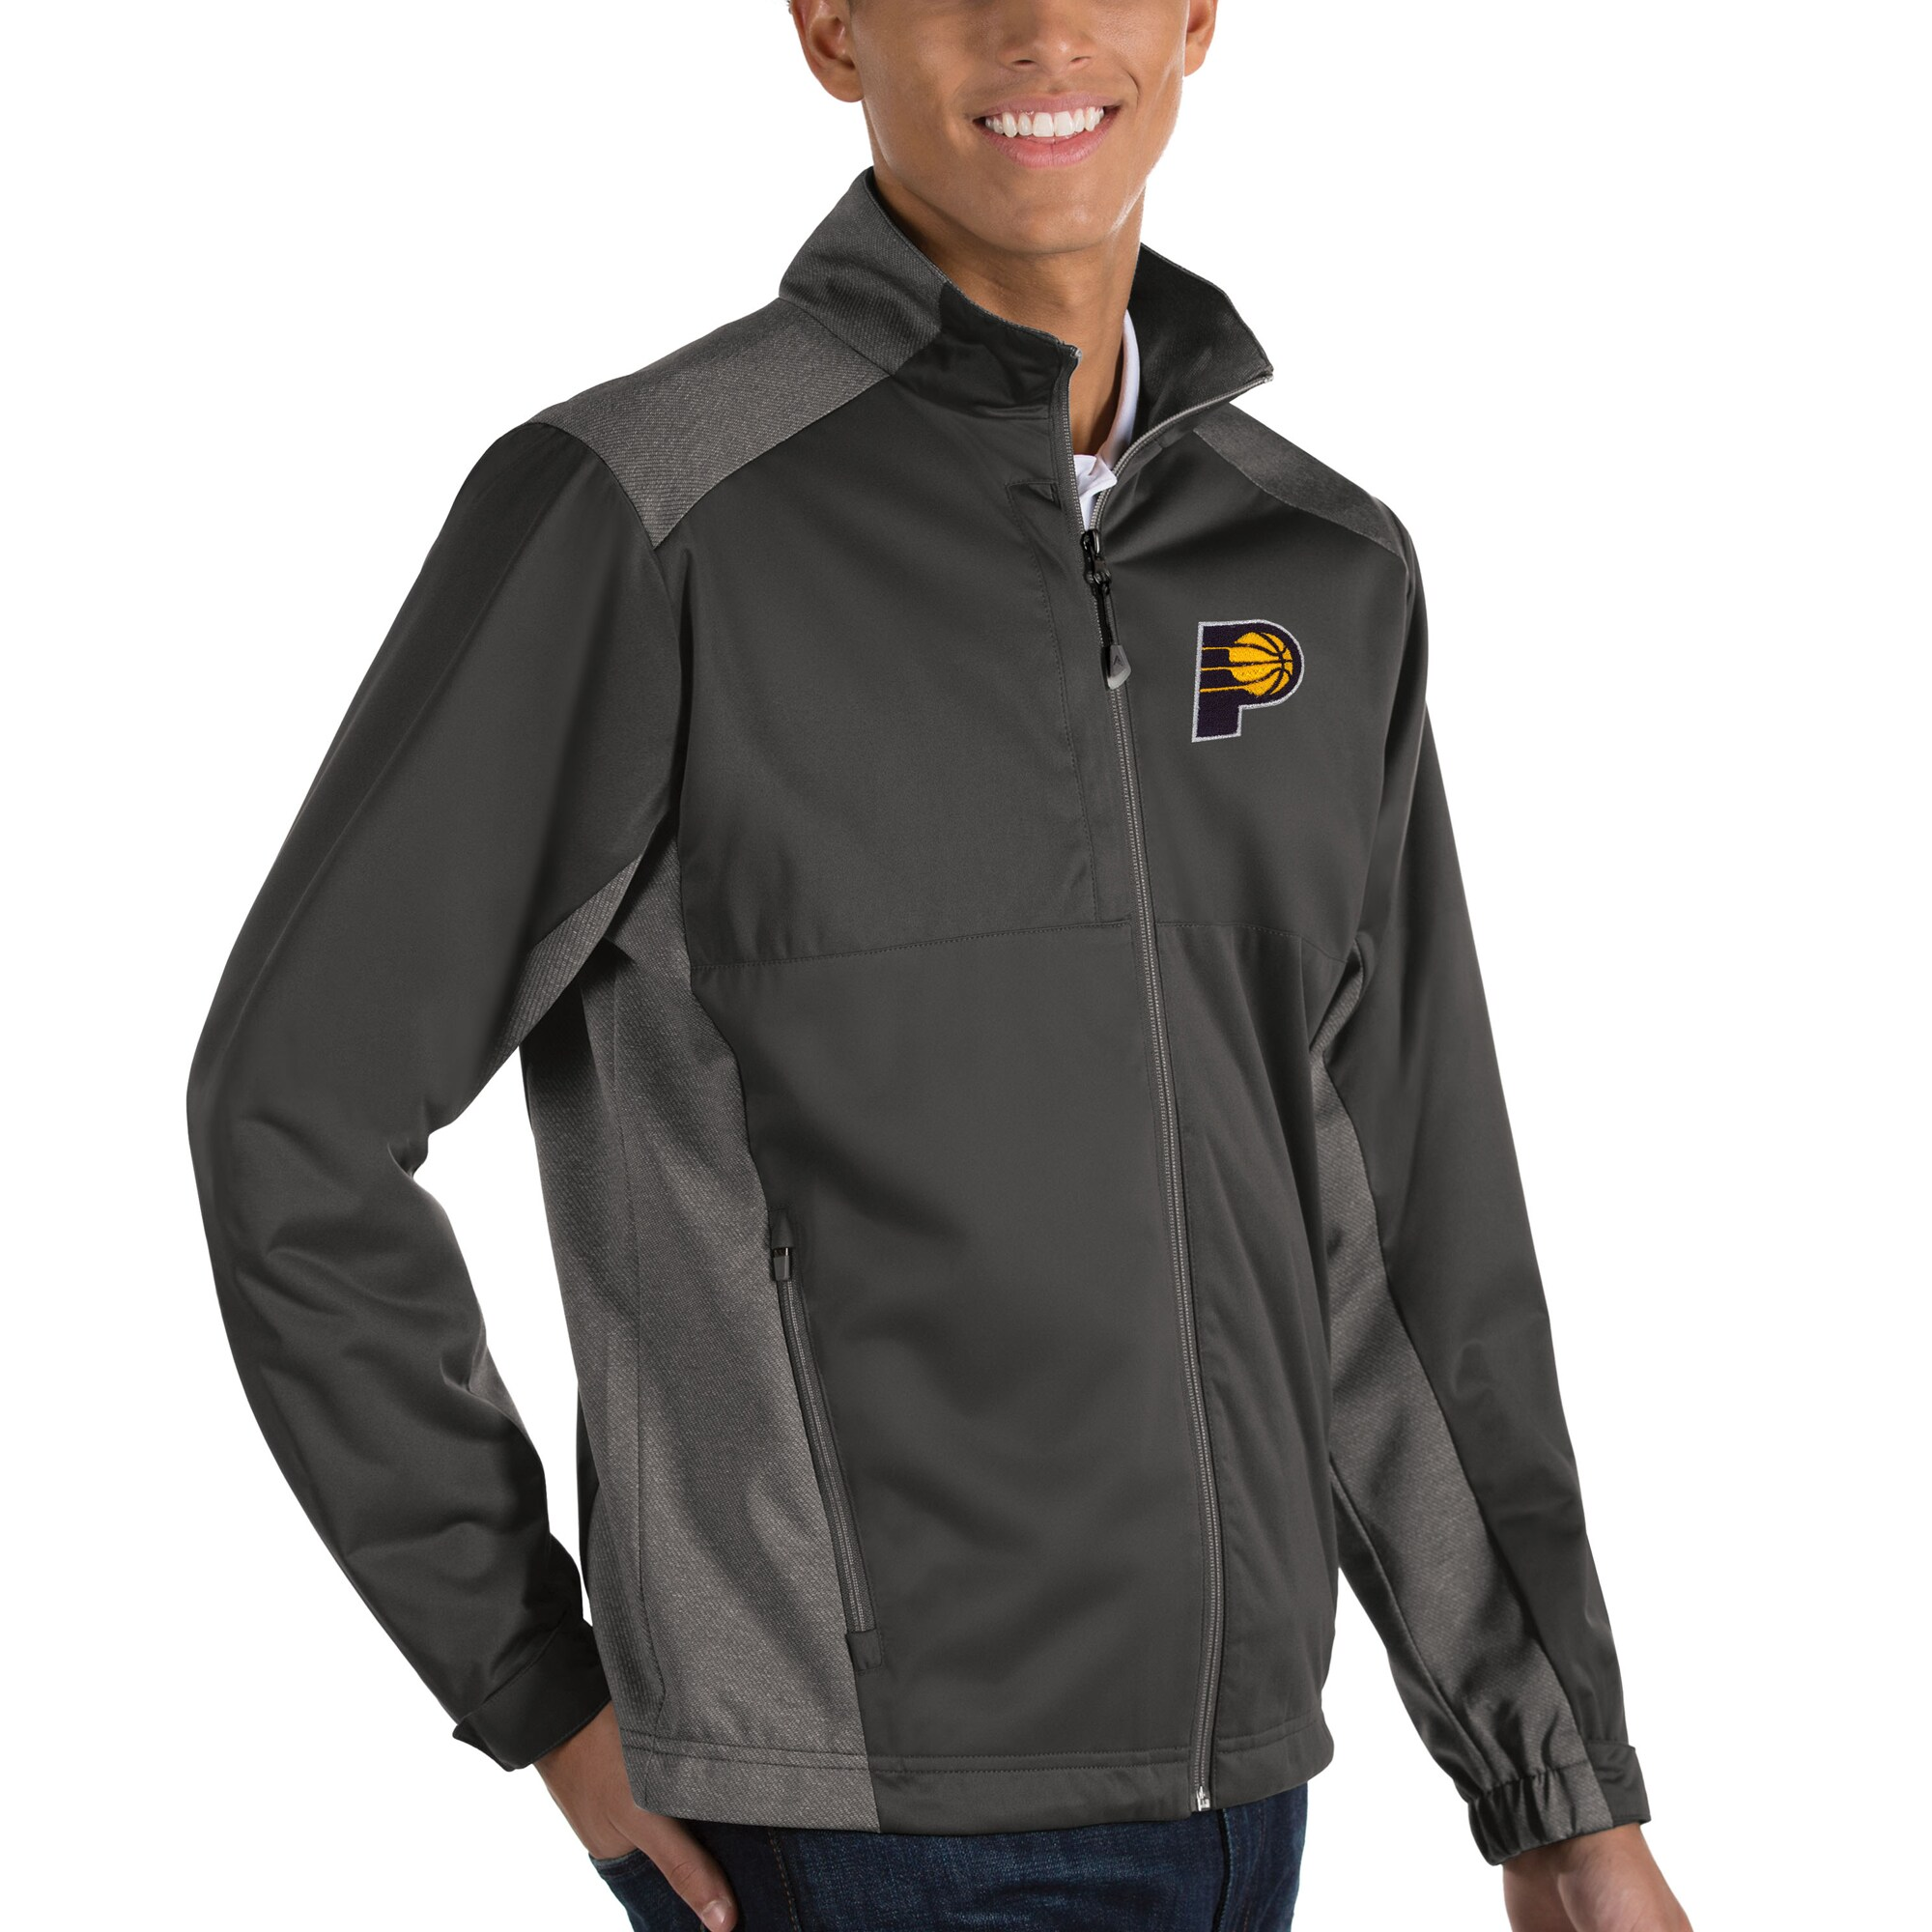 Indiana Pacers Antigua Revolve Full-Zip Jacket - Charcoal